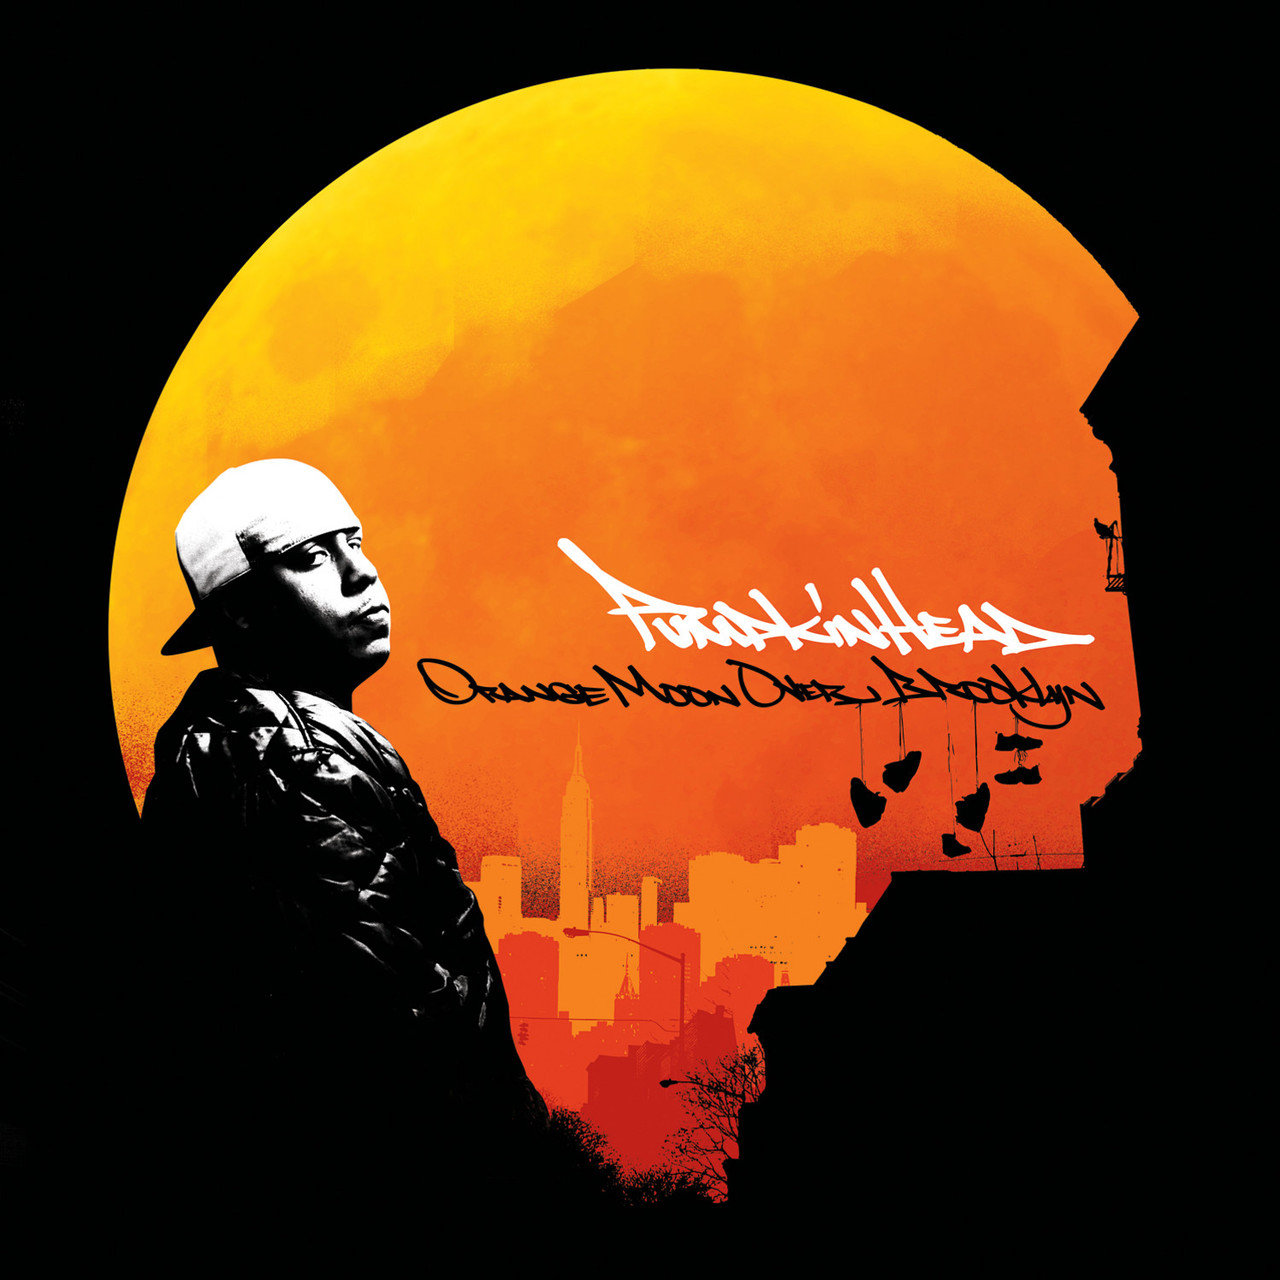 Pumpkinhead – Orange Moon Over Brooklyn